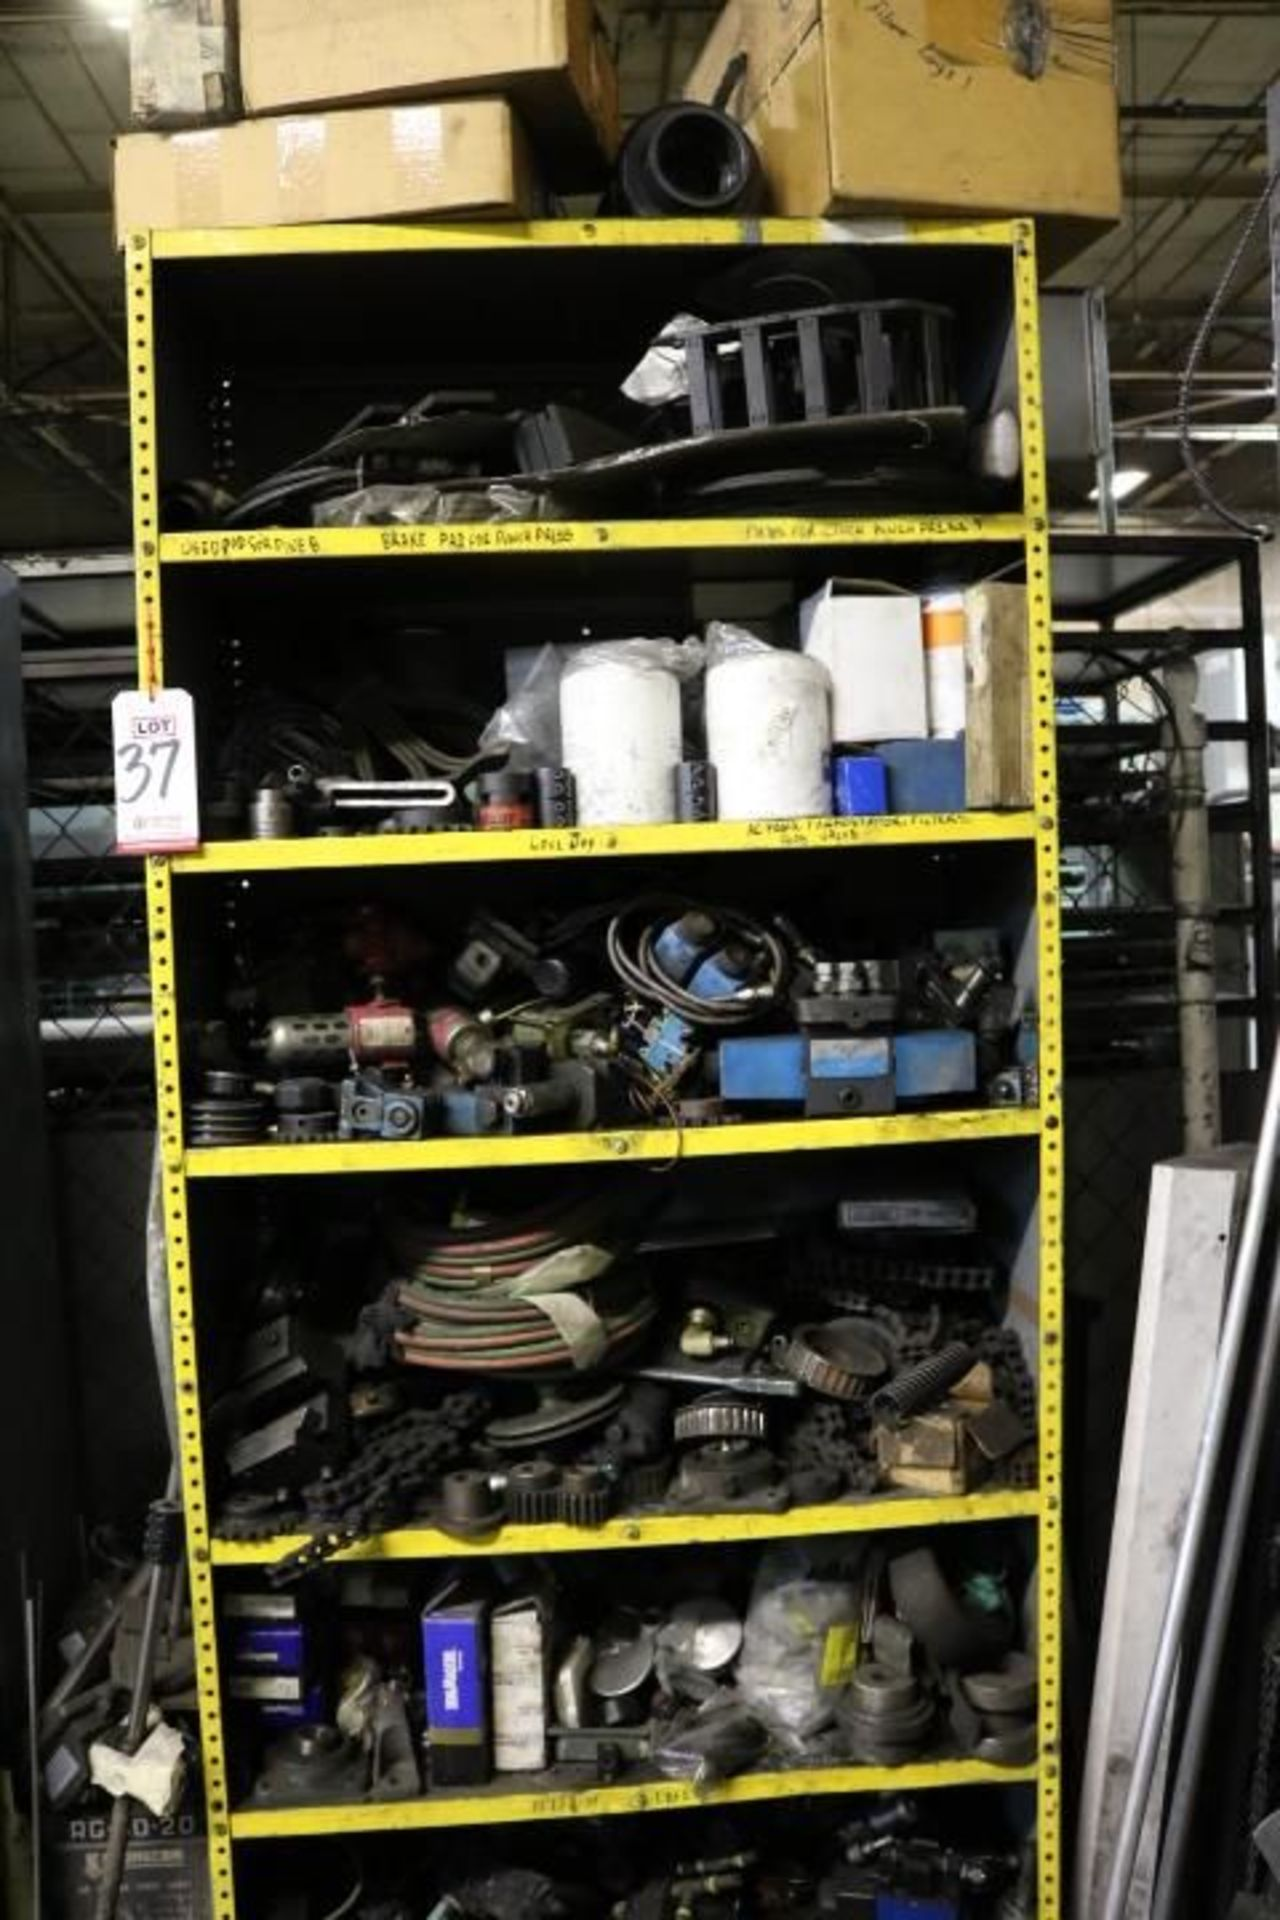 Lot 37 - CABINET W/ CONTENTS TO INCLUDE: AIR HOSES, FILTERS, ELECTRICAL MOTOR, ETC.